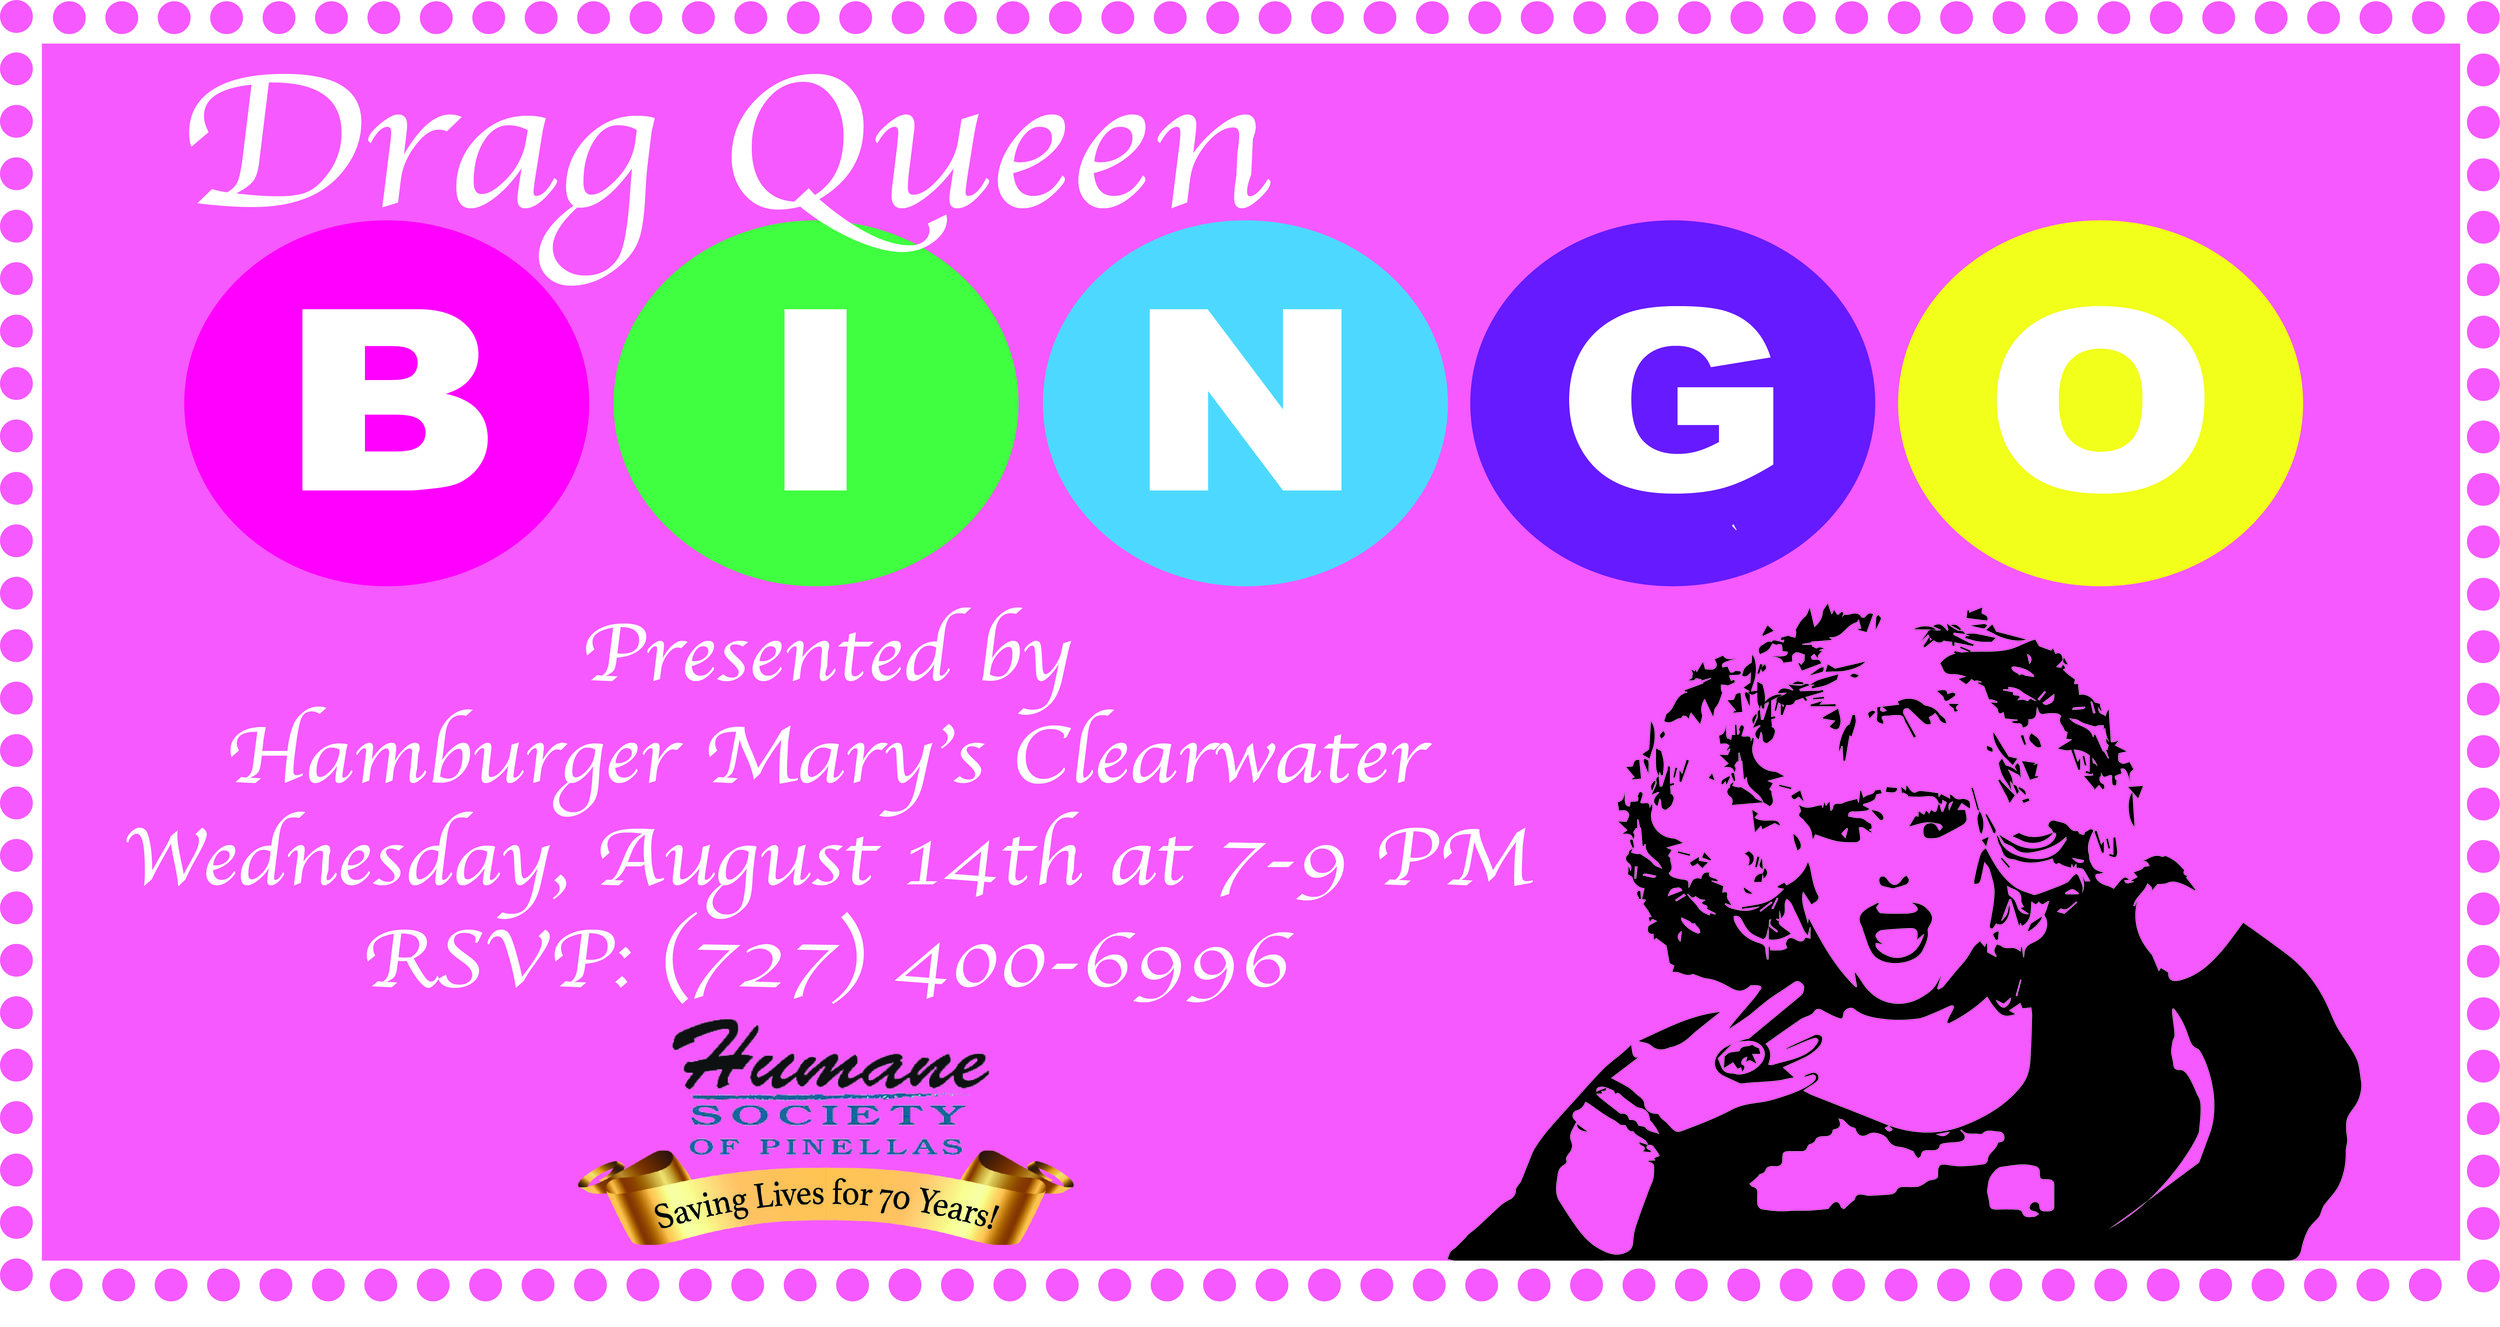 Drag Queen Bingo Aug 14 Cover.jpg